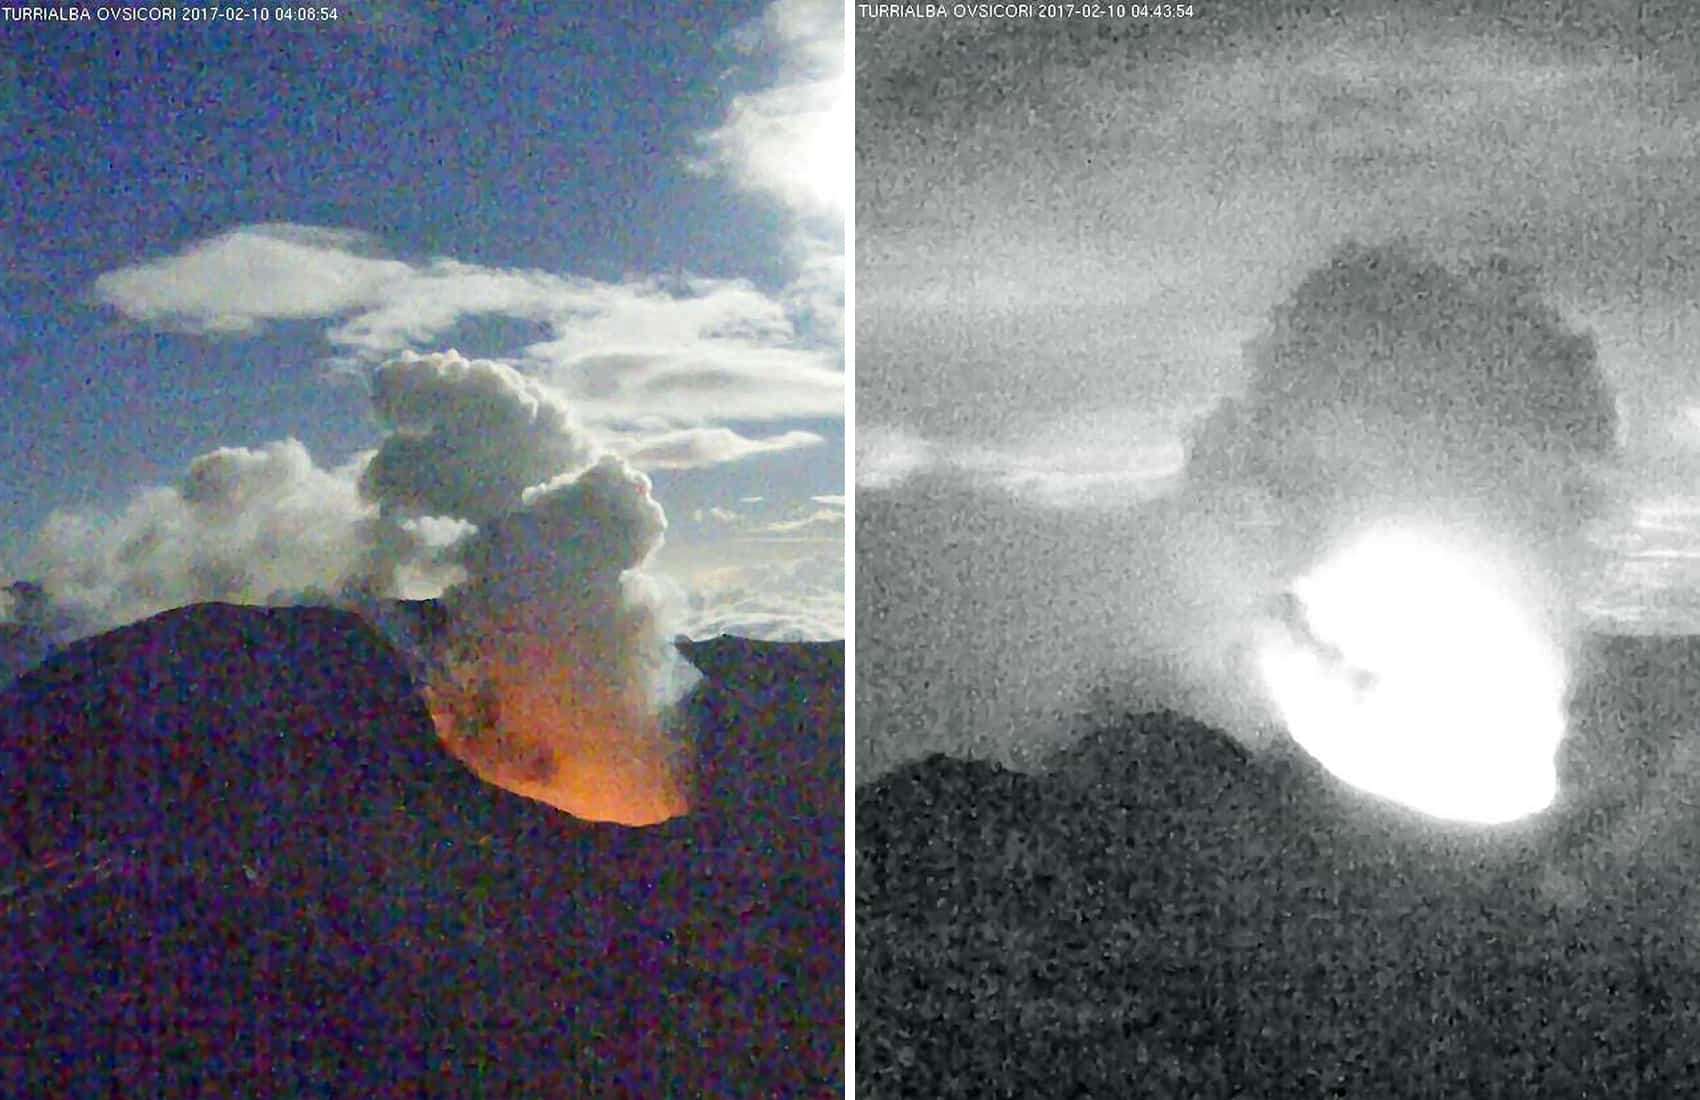 Incandescence (possible magma) at Turrialba Volcano. Feb. 10, 2017.